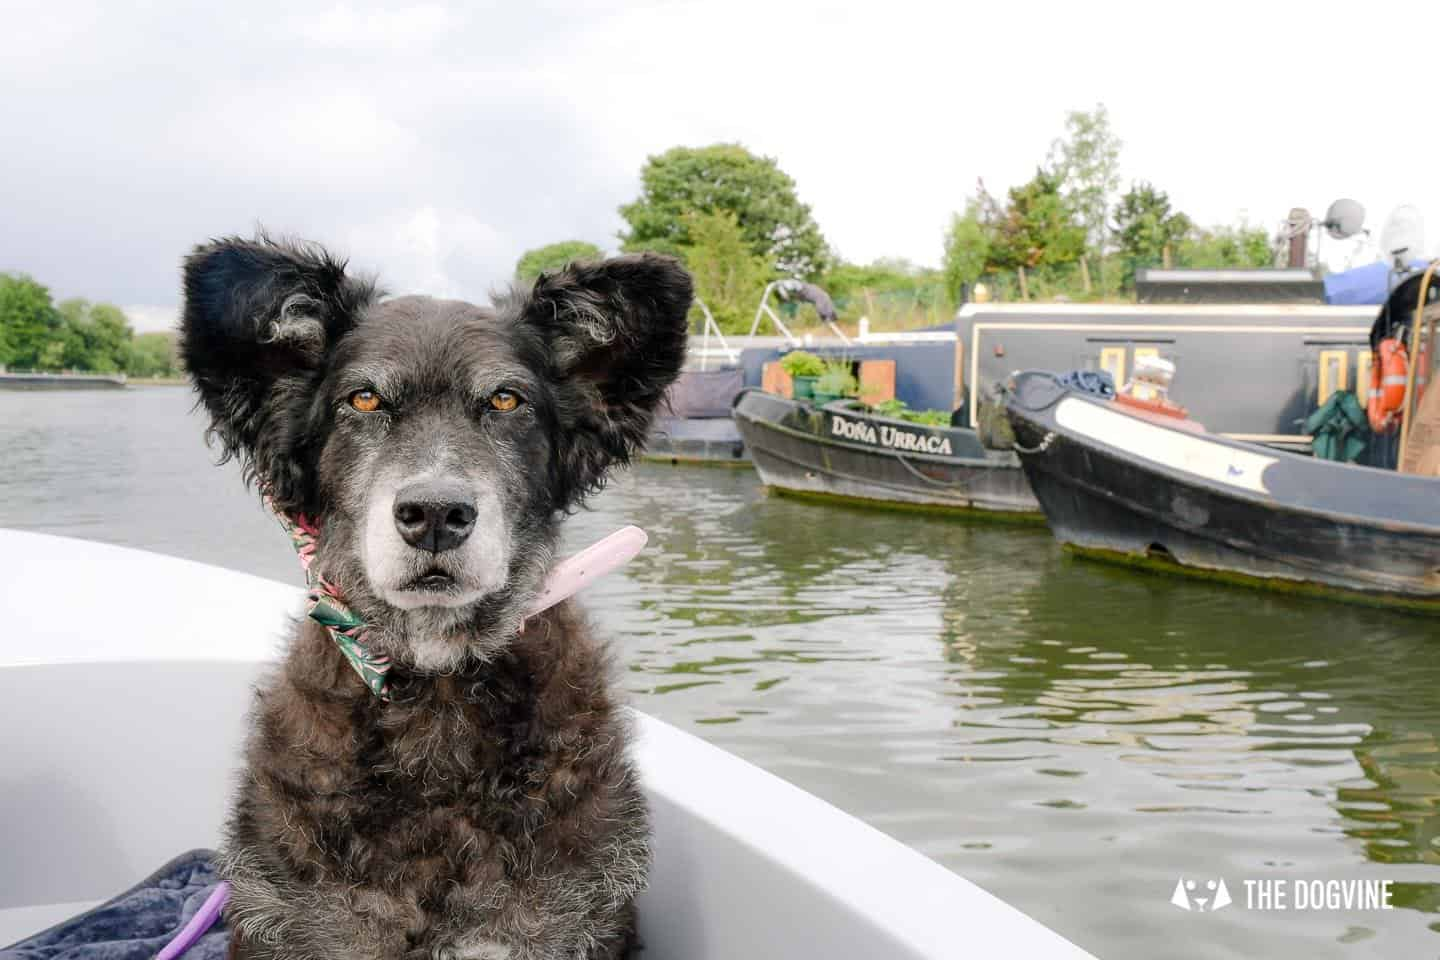 Dog-friendly Go Boat Kingston Upon Thames 20